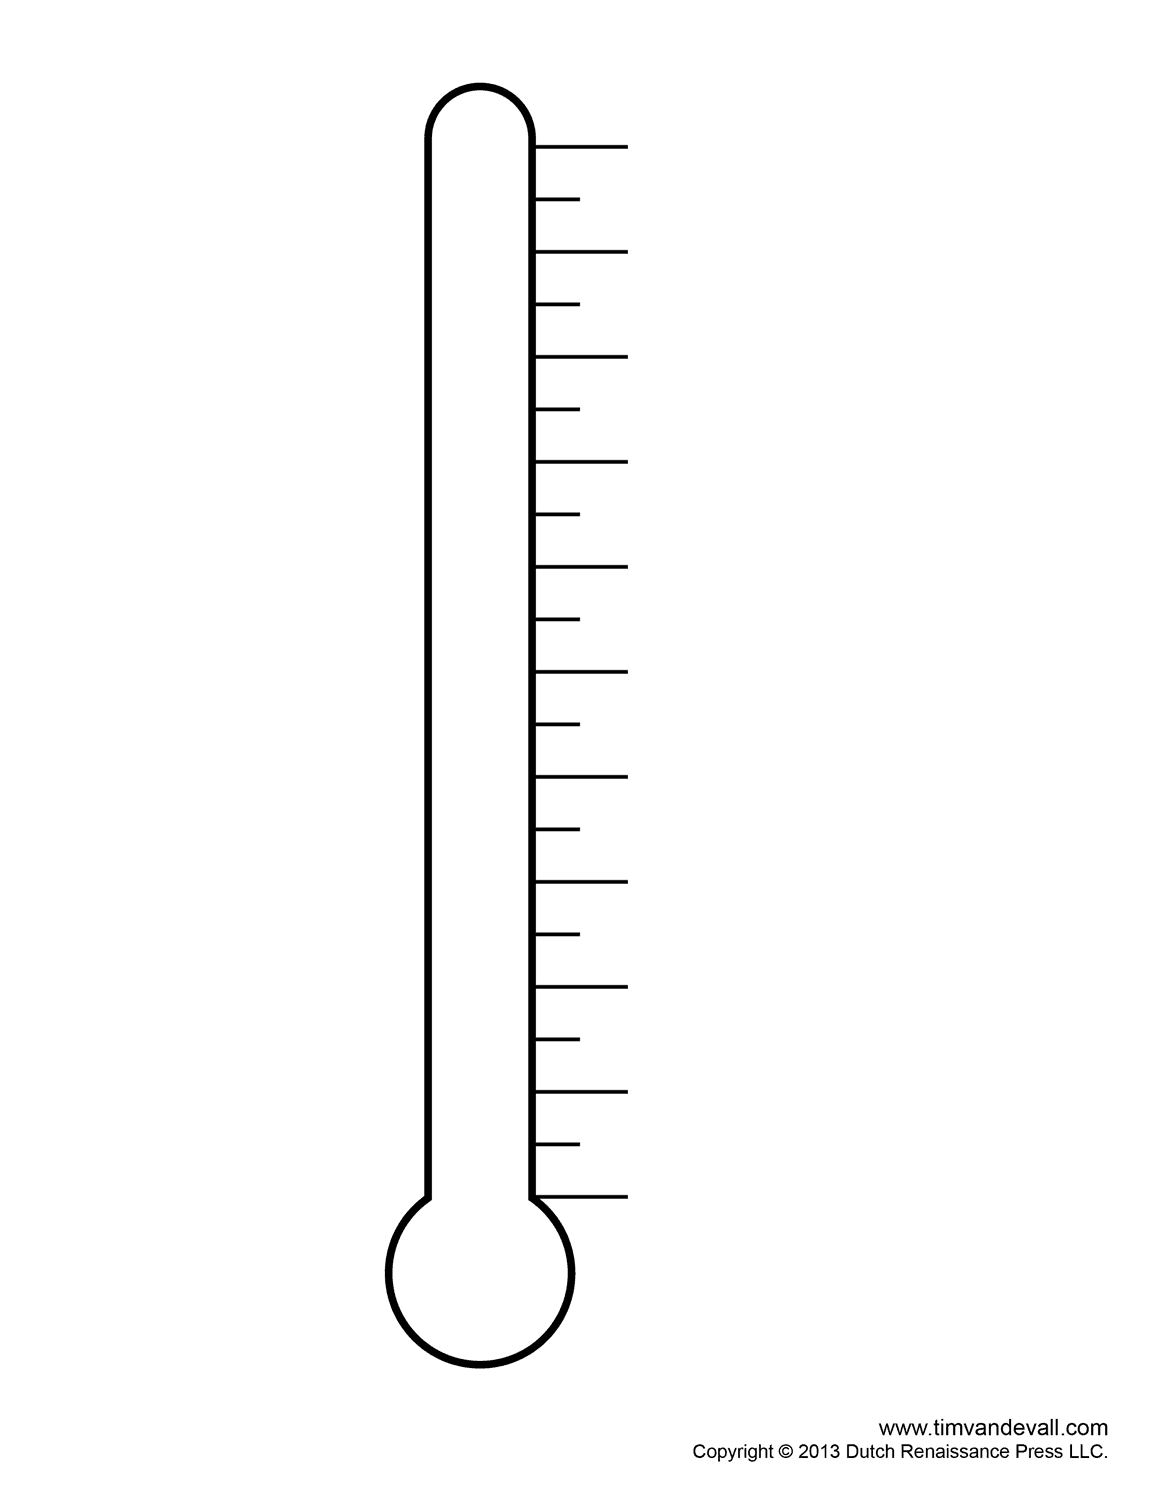 Fundraising Thermometer Templates For Fundraising Events